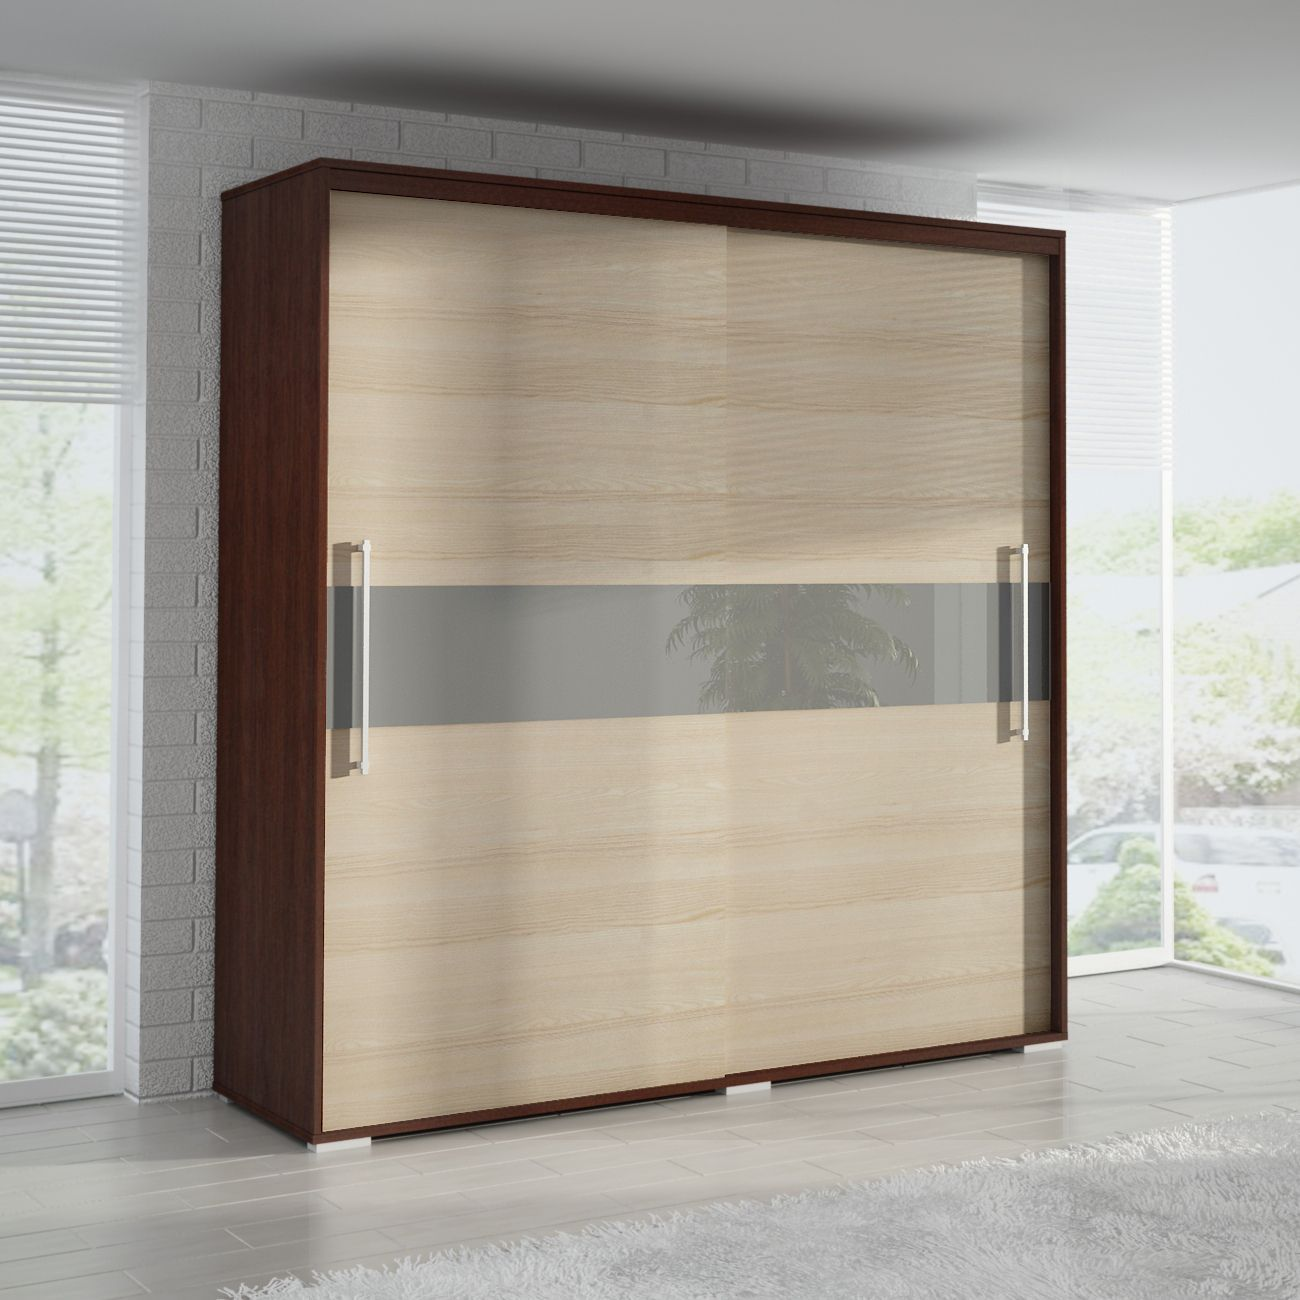 Wardrobe closet sliding door calegion master bedroom for 4 door wardrobe interior designs